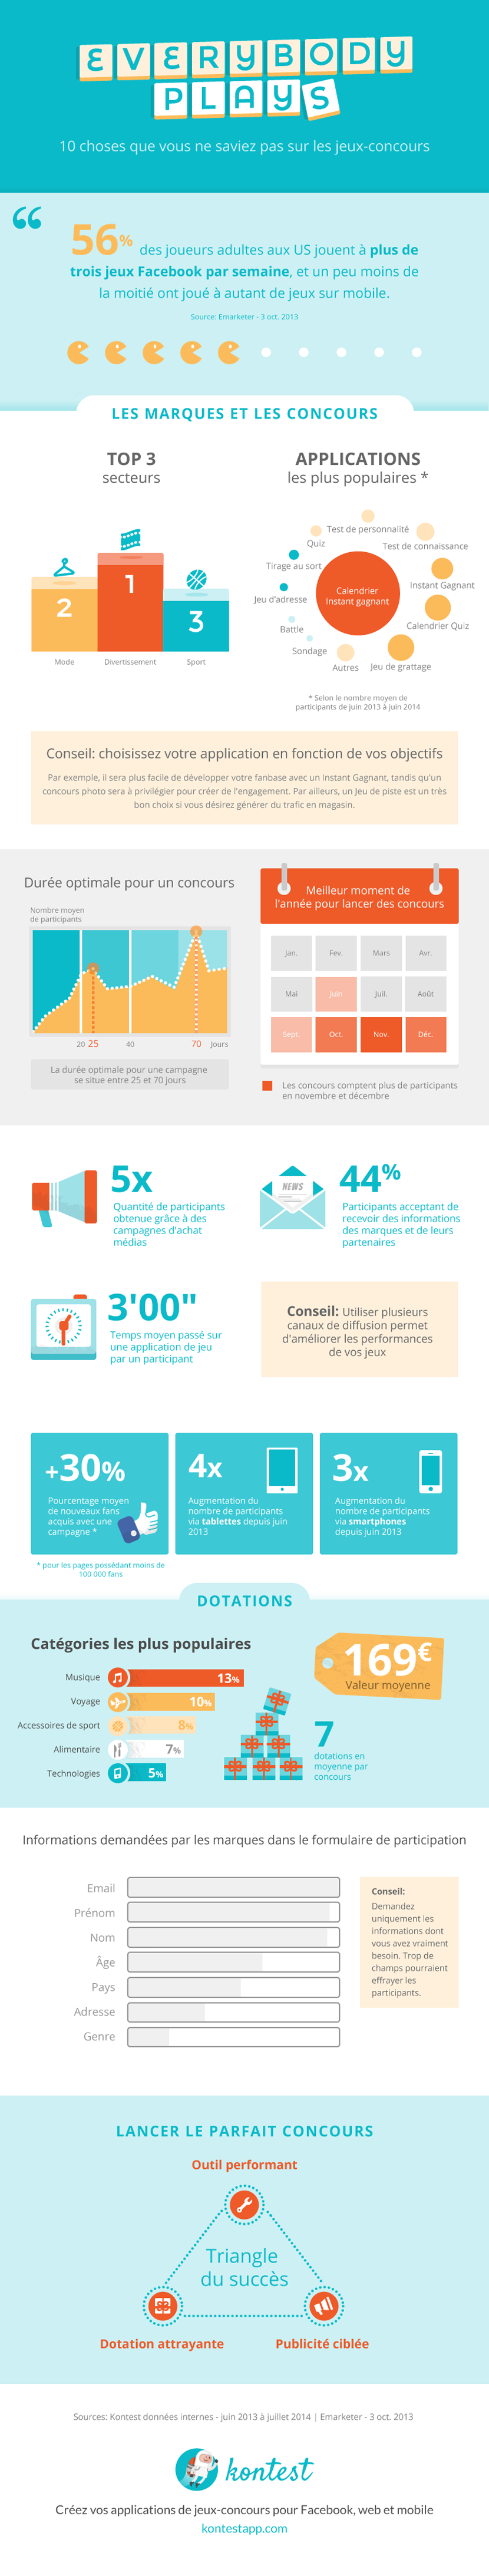 2014 - Infographie Everybody Plays